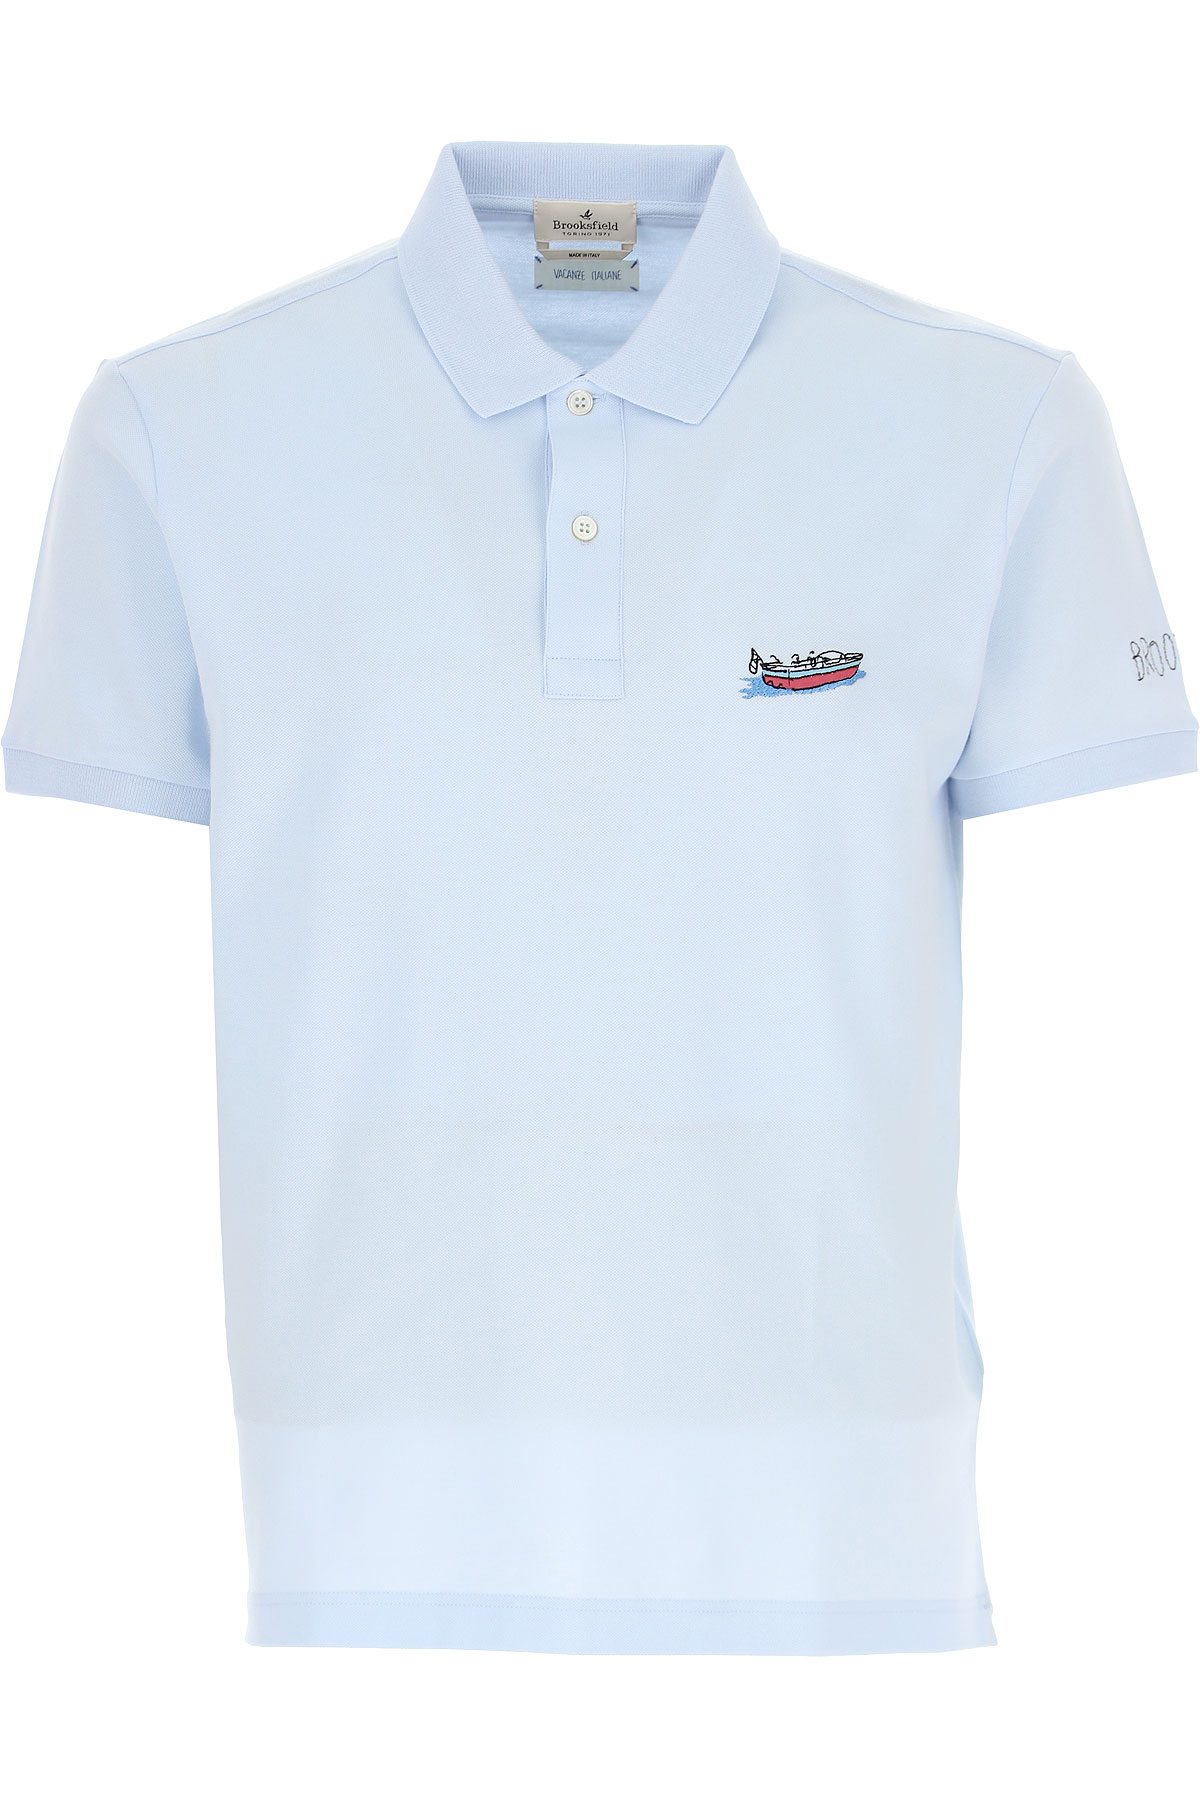 Brooksfield Polo Shirt for Men On Sale, Light Blue, Cotton, 2019, L M XL XXL